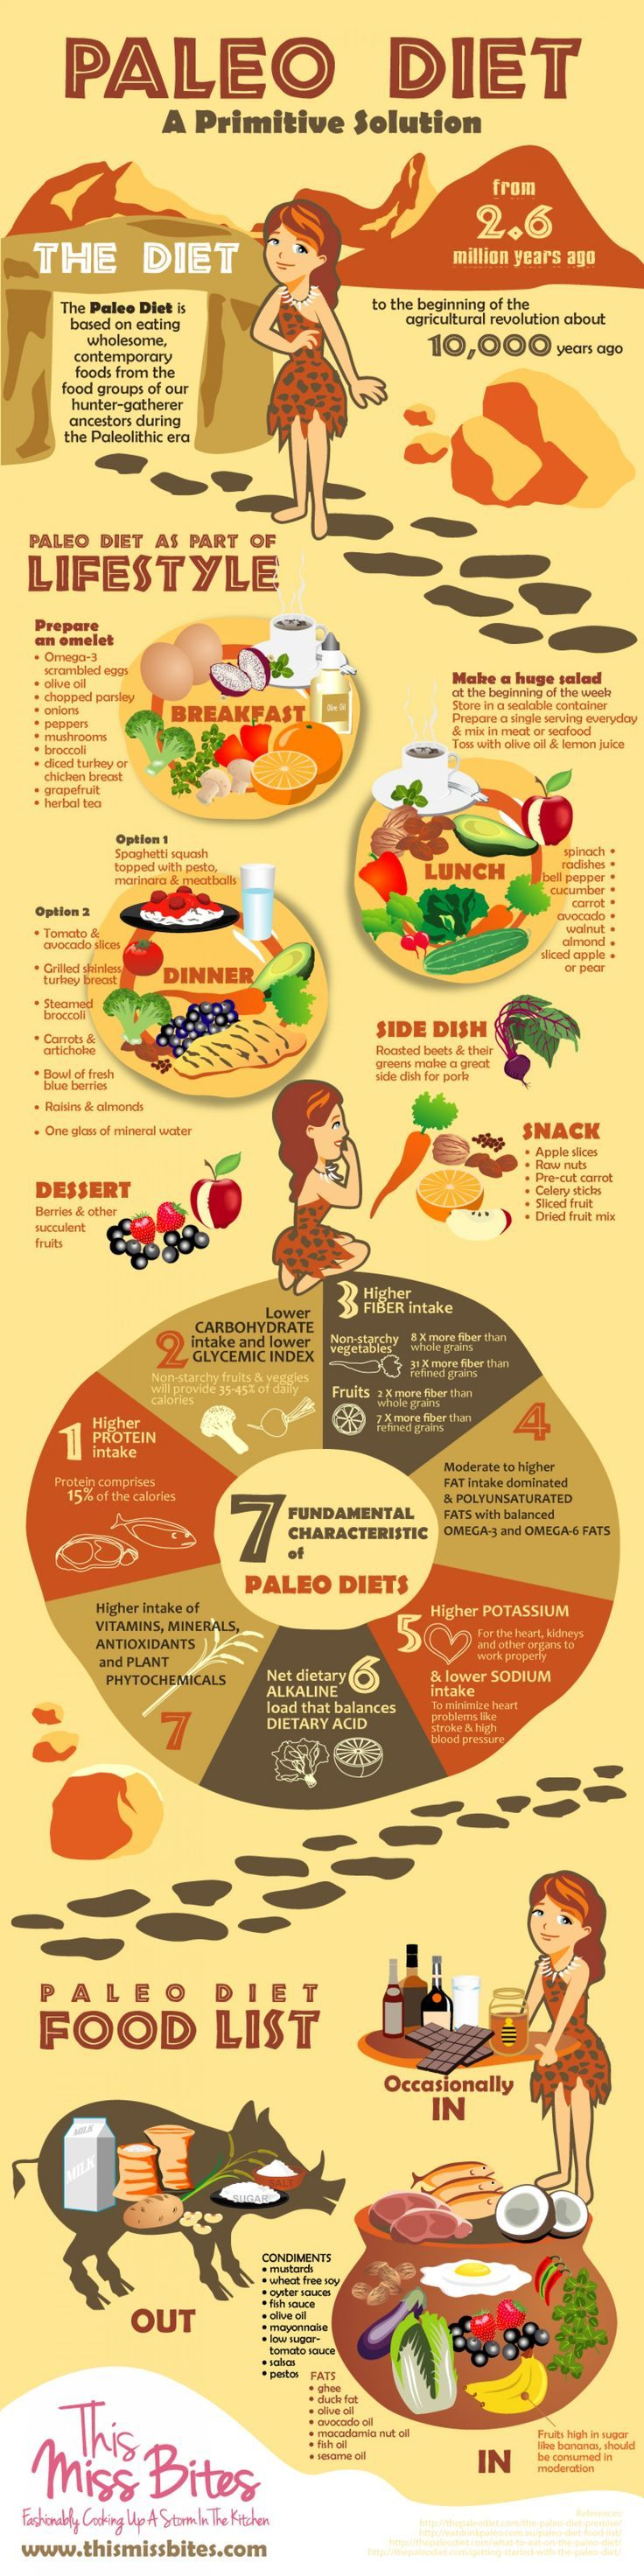 Paleo Diet: A Primitive Solution Infographic ♥ Paleo Diet Plan leads to Health Food Recipes and Good Diet Meals ♥ low carb no carb Recipes, Infographics & DAILY nutritional science news to help you. ►Paleo Diet news Updated DAILY ◄ at http://carbswitch.com/2014/09/19/health-food-recipes-for-good-diet-meals/ #carbswitch Please Repin ►♥◄ #HotPinPtr